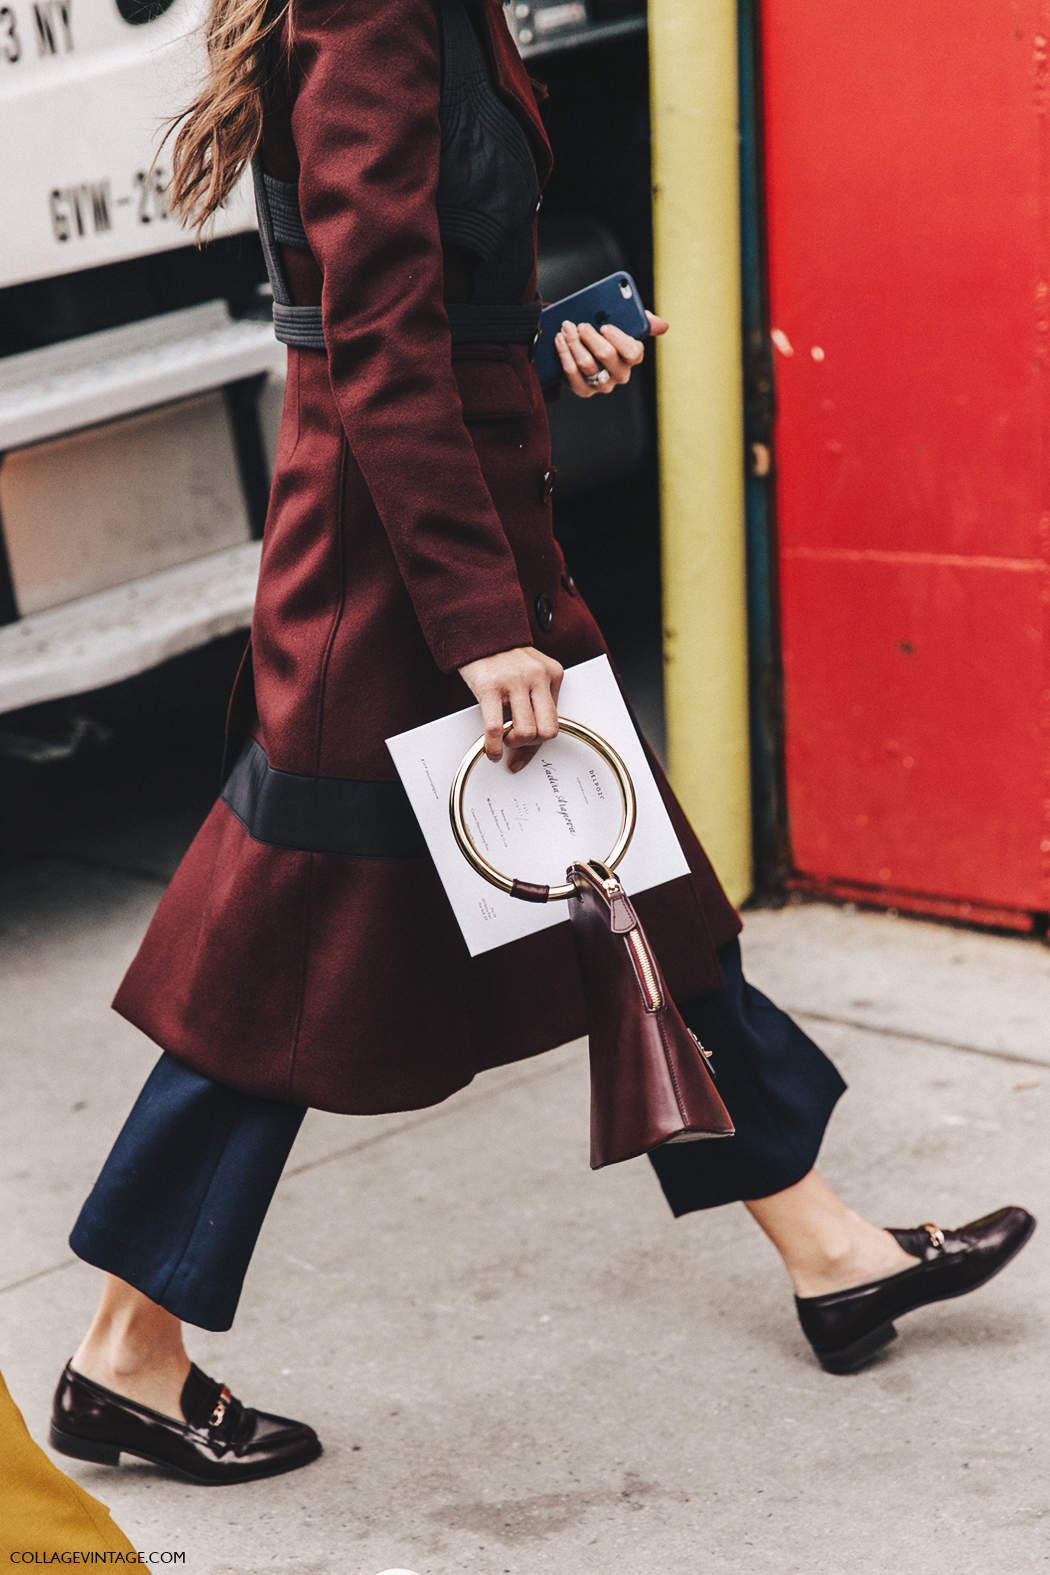 NYFW-New_York_Fashion_Week-Fall_Winter-16-Street_Style-Burgundy-Loafers-